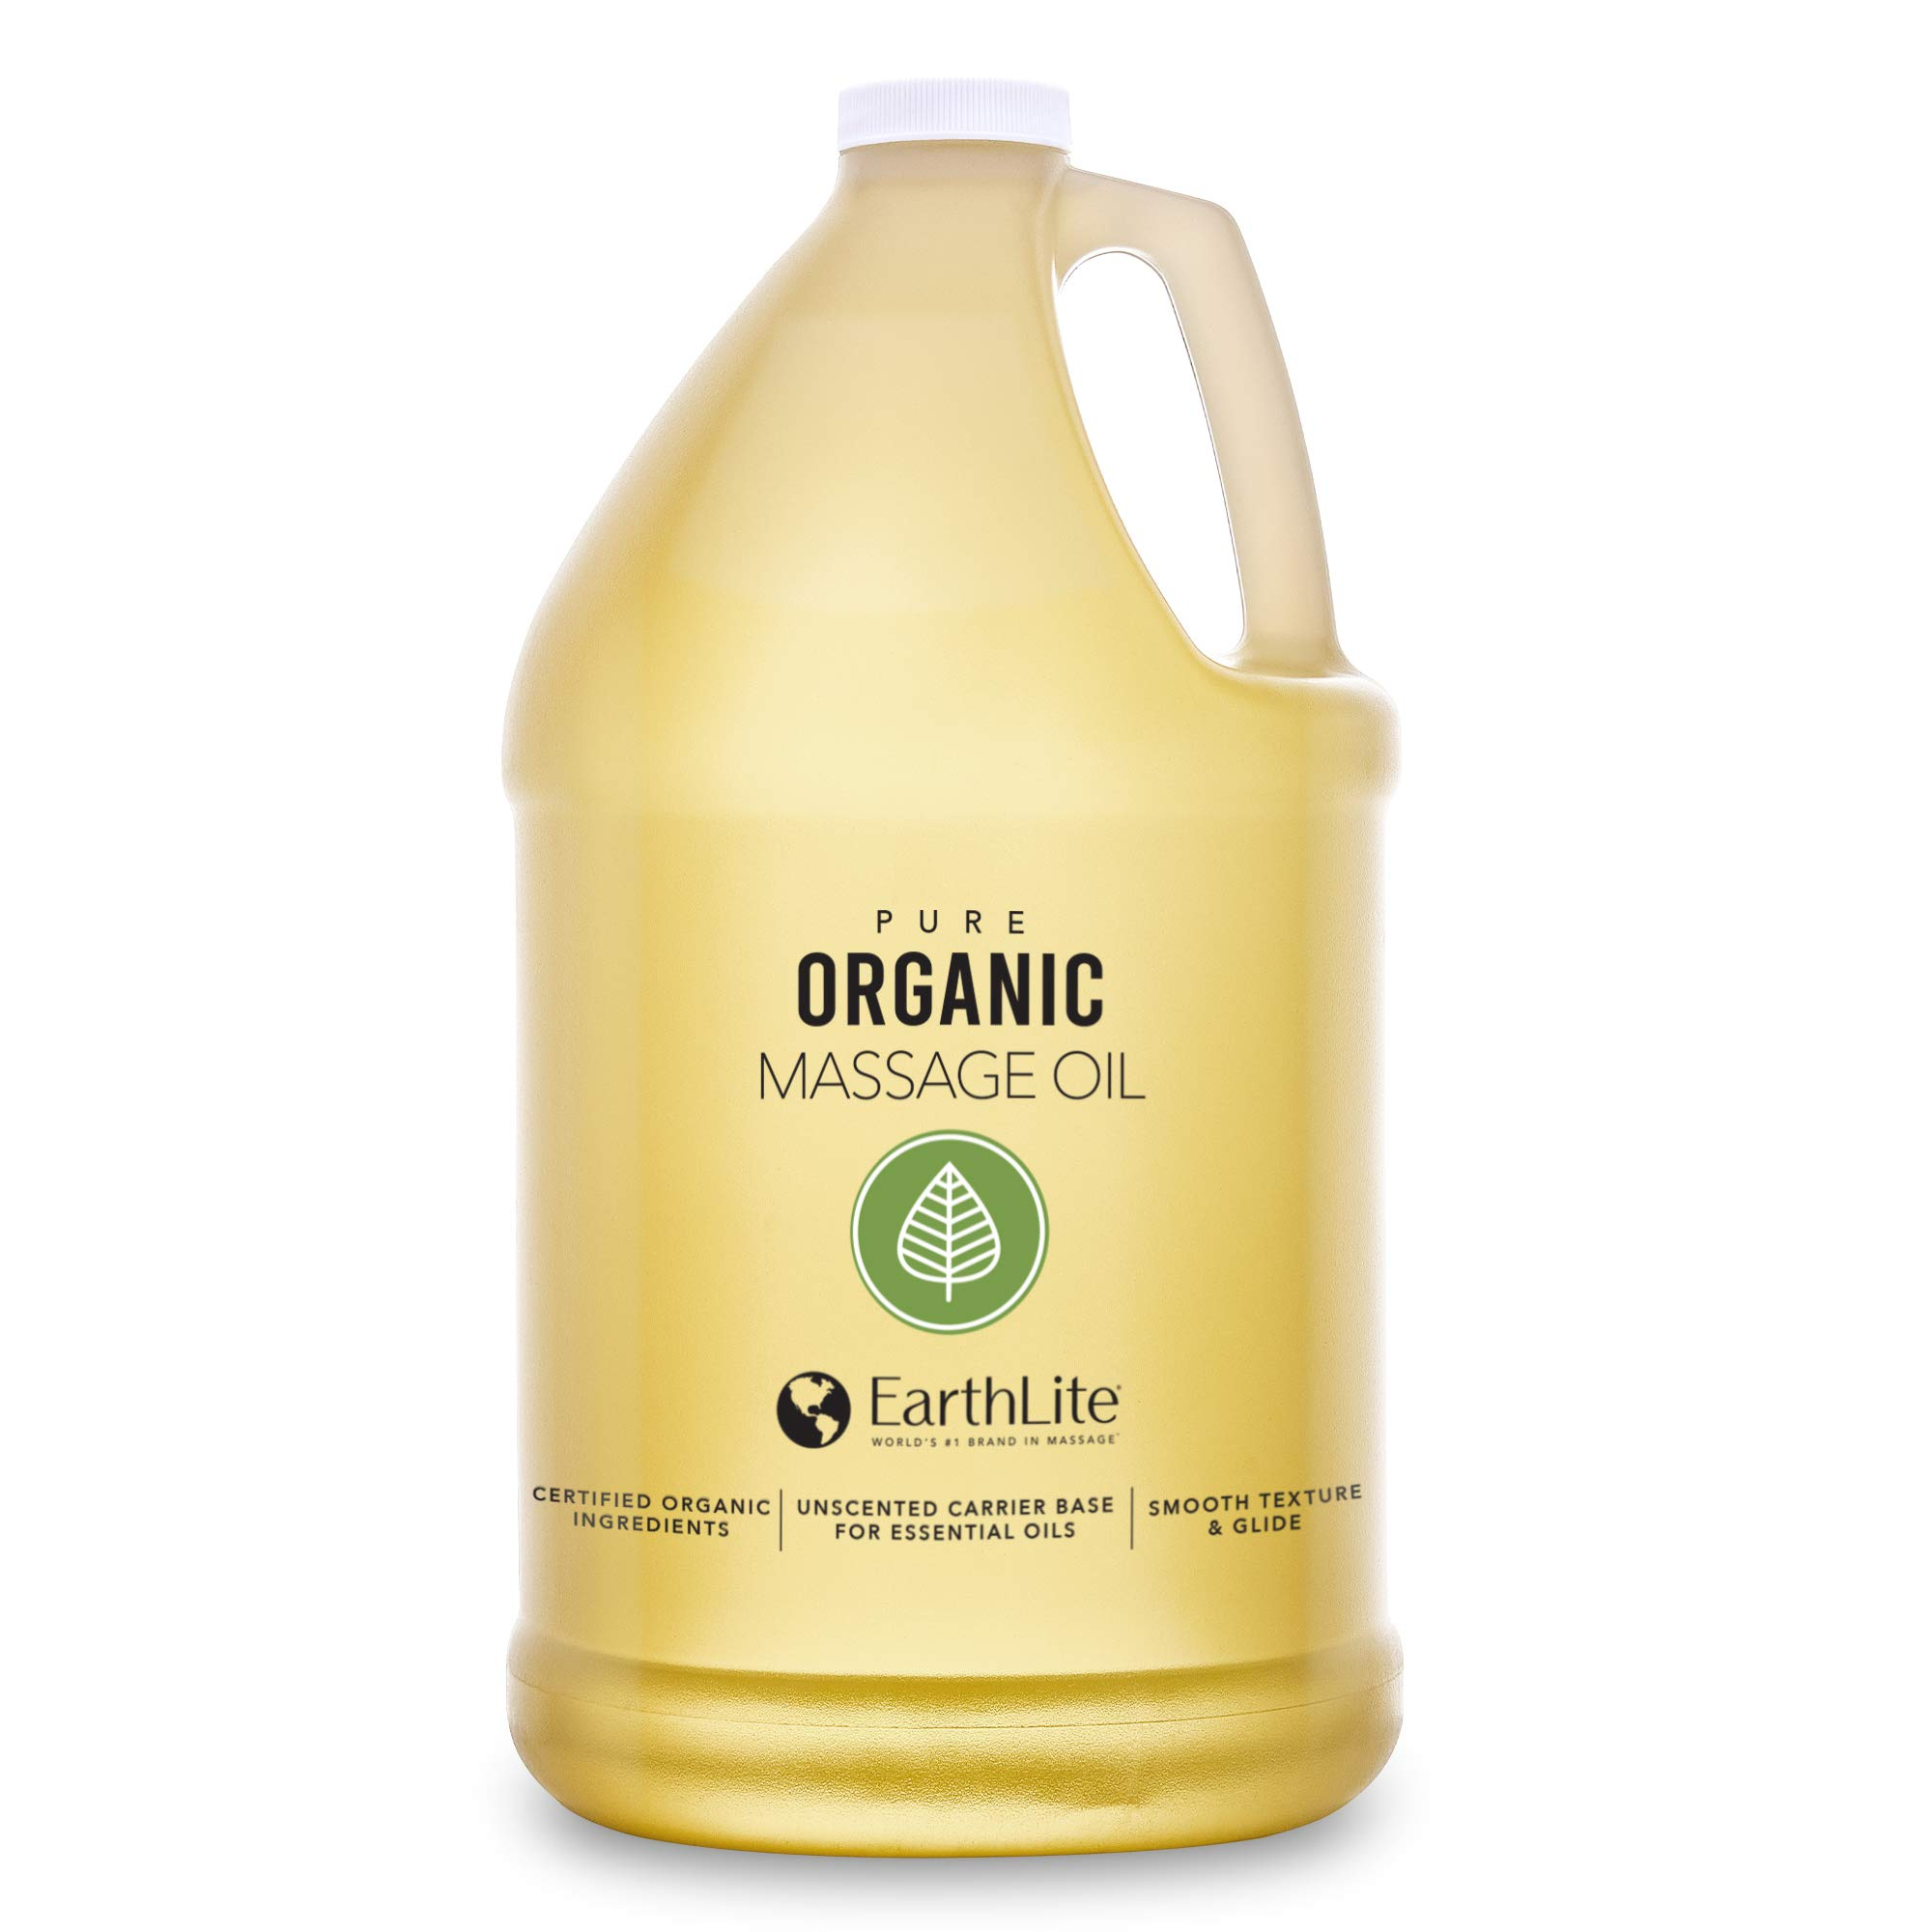 EARTHLITE Organic Massage Oil – NEW FORMULA: Chemical Free, 100% Certified Organic, Finest Quality for Therapists & Clients, Unscented